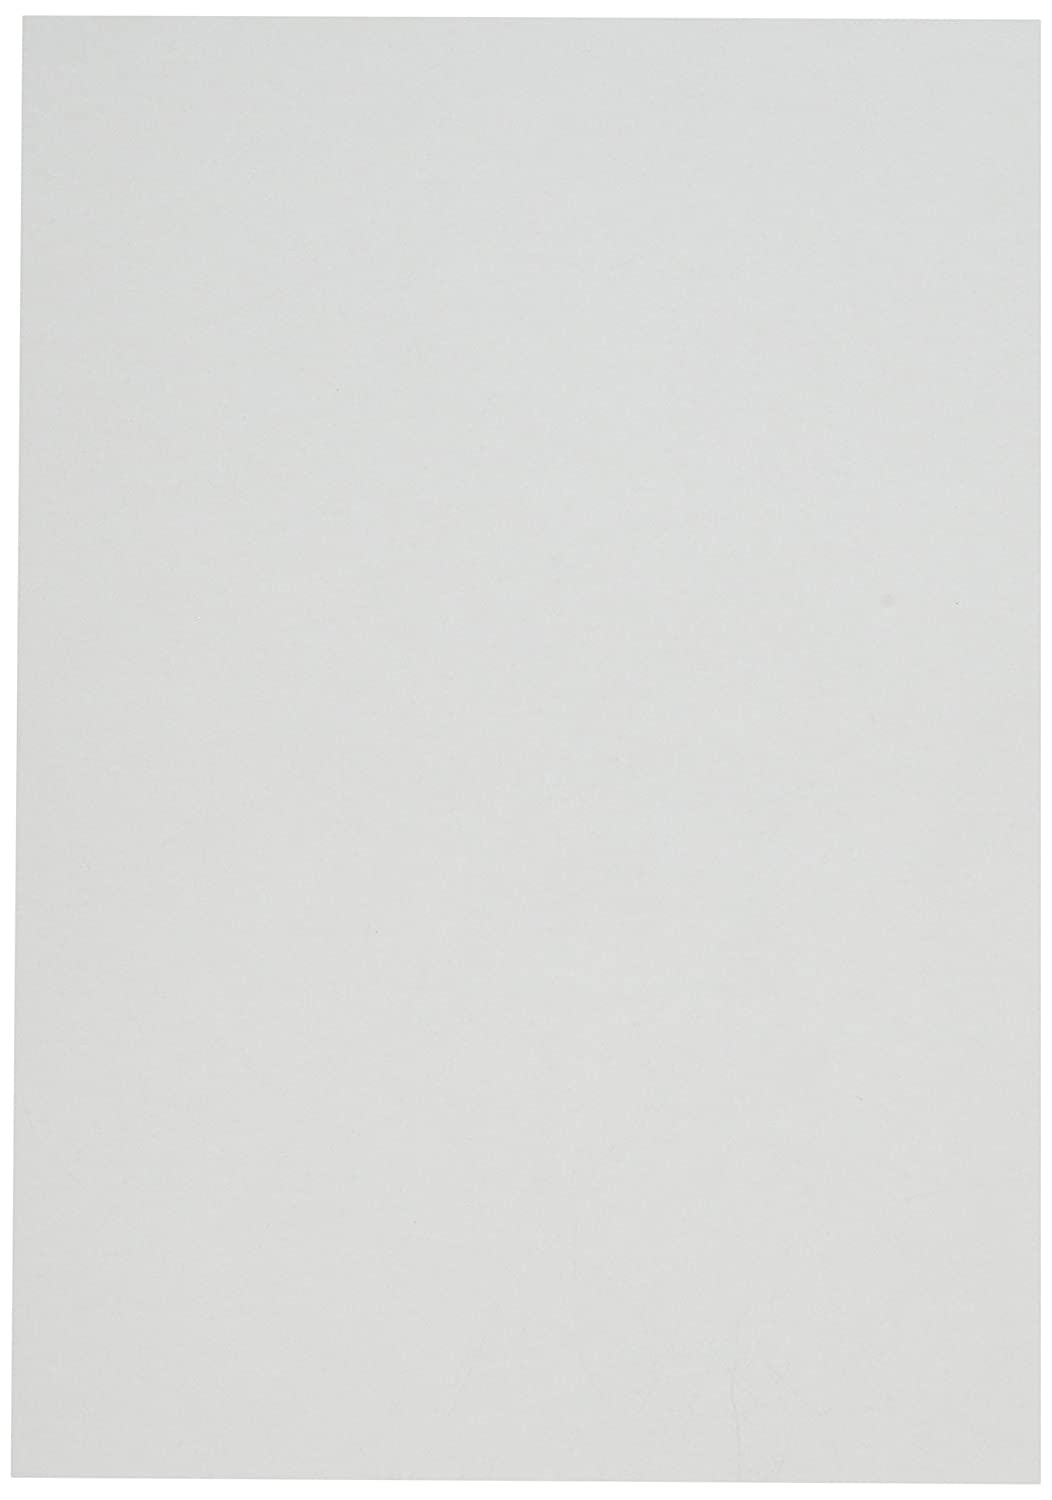 Pergamano Parchment Paper, Small, 12 Sheets PG61482